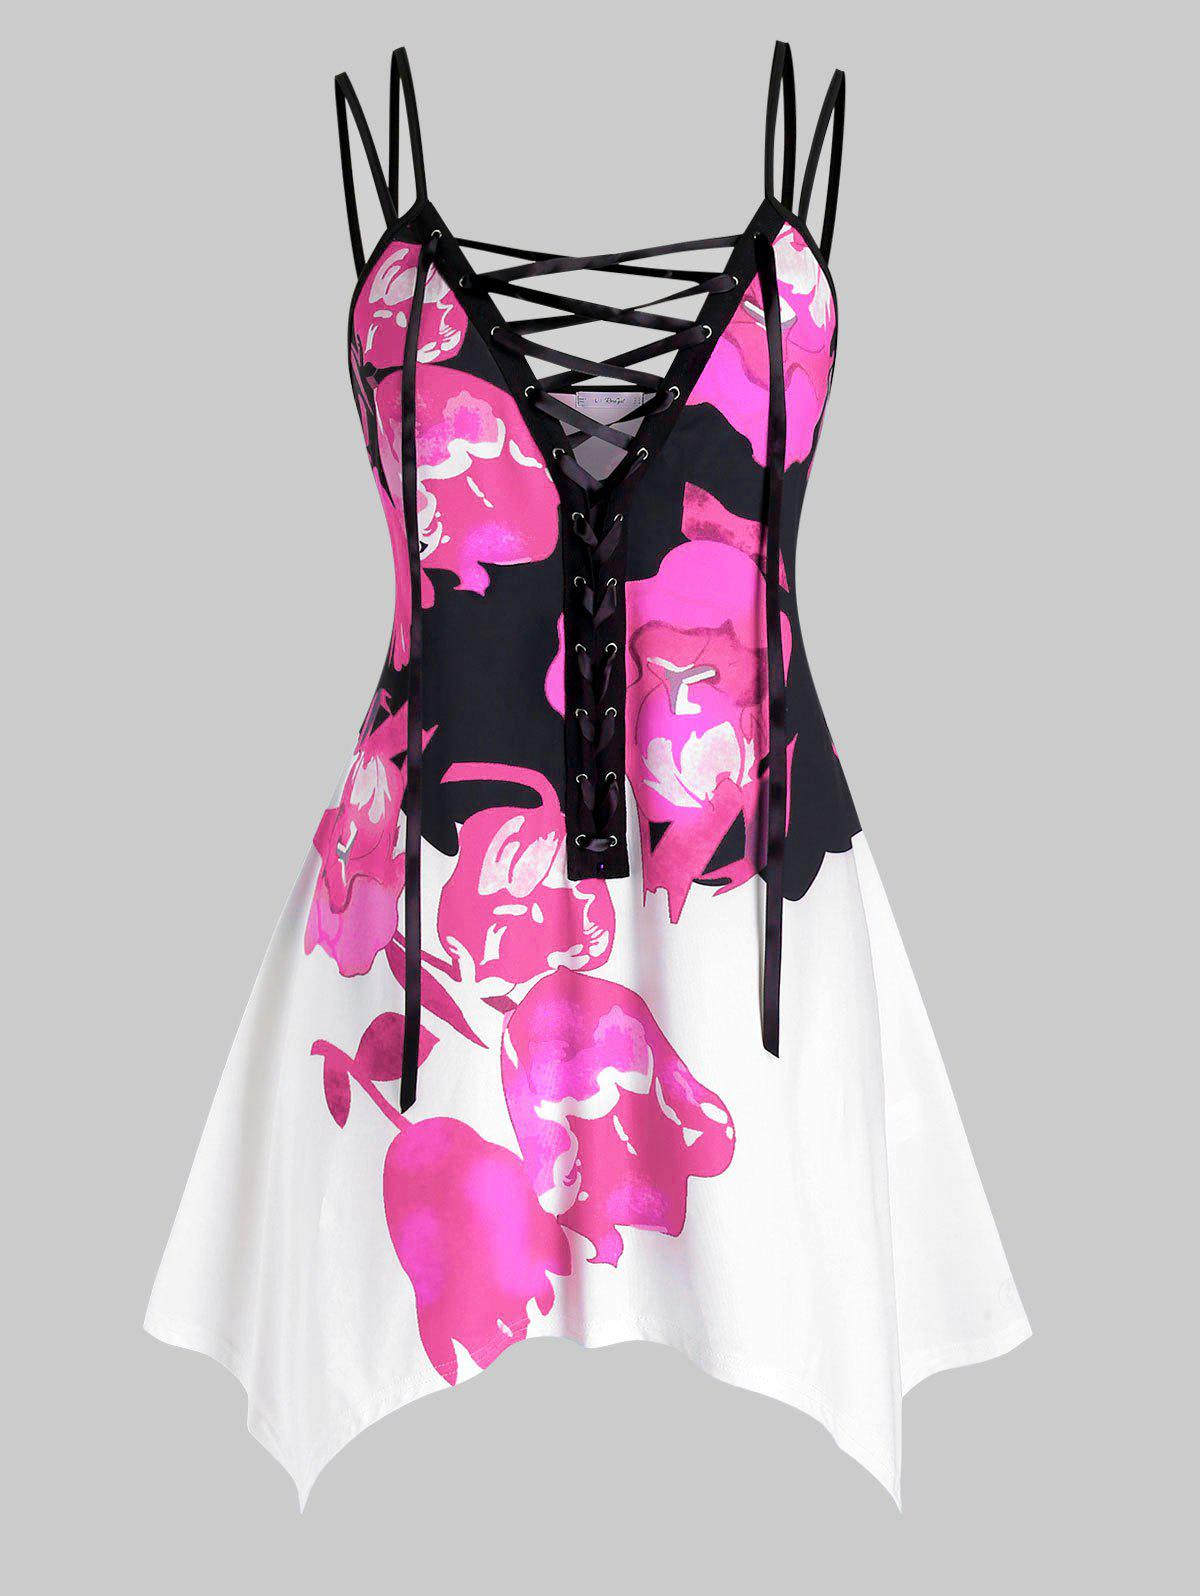 Plus Size Flower Print Lace Up Asymmetrical Tunic Cami Top - LIGHT PINK 5X